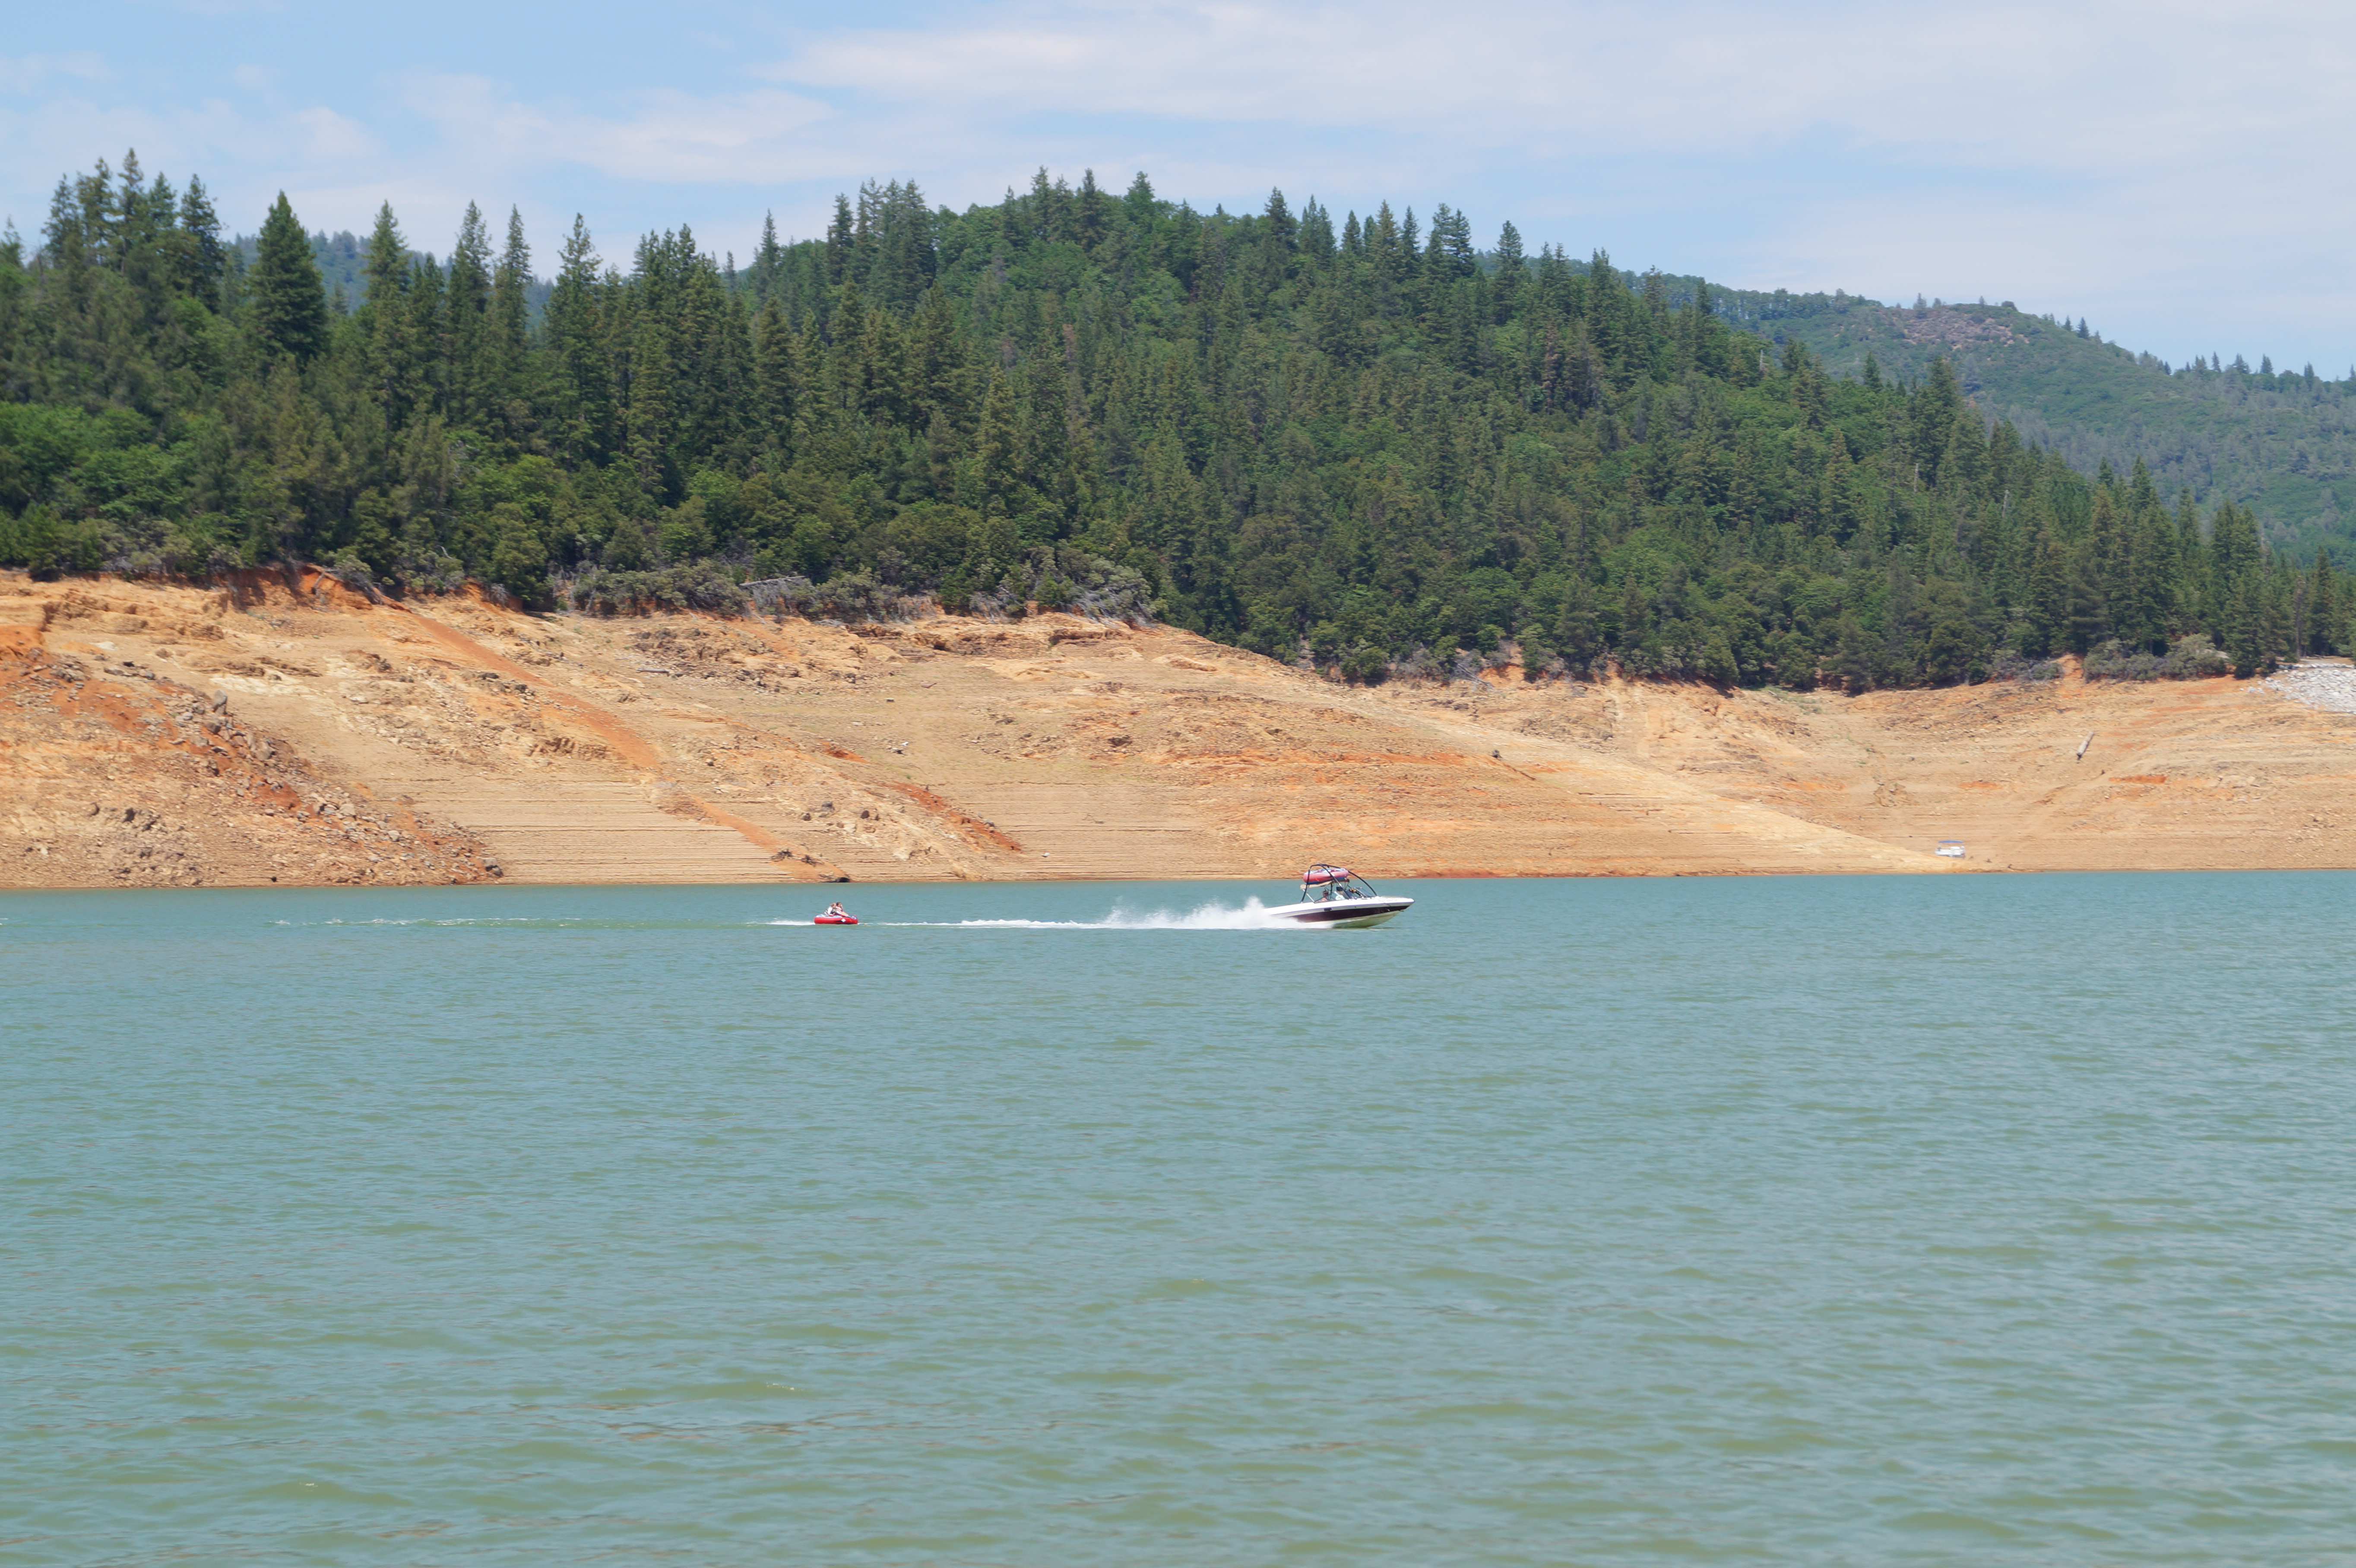 Right! seems lake shasta water level will